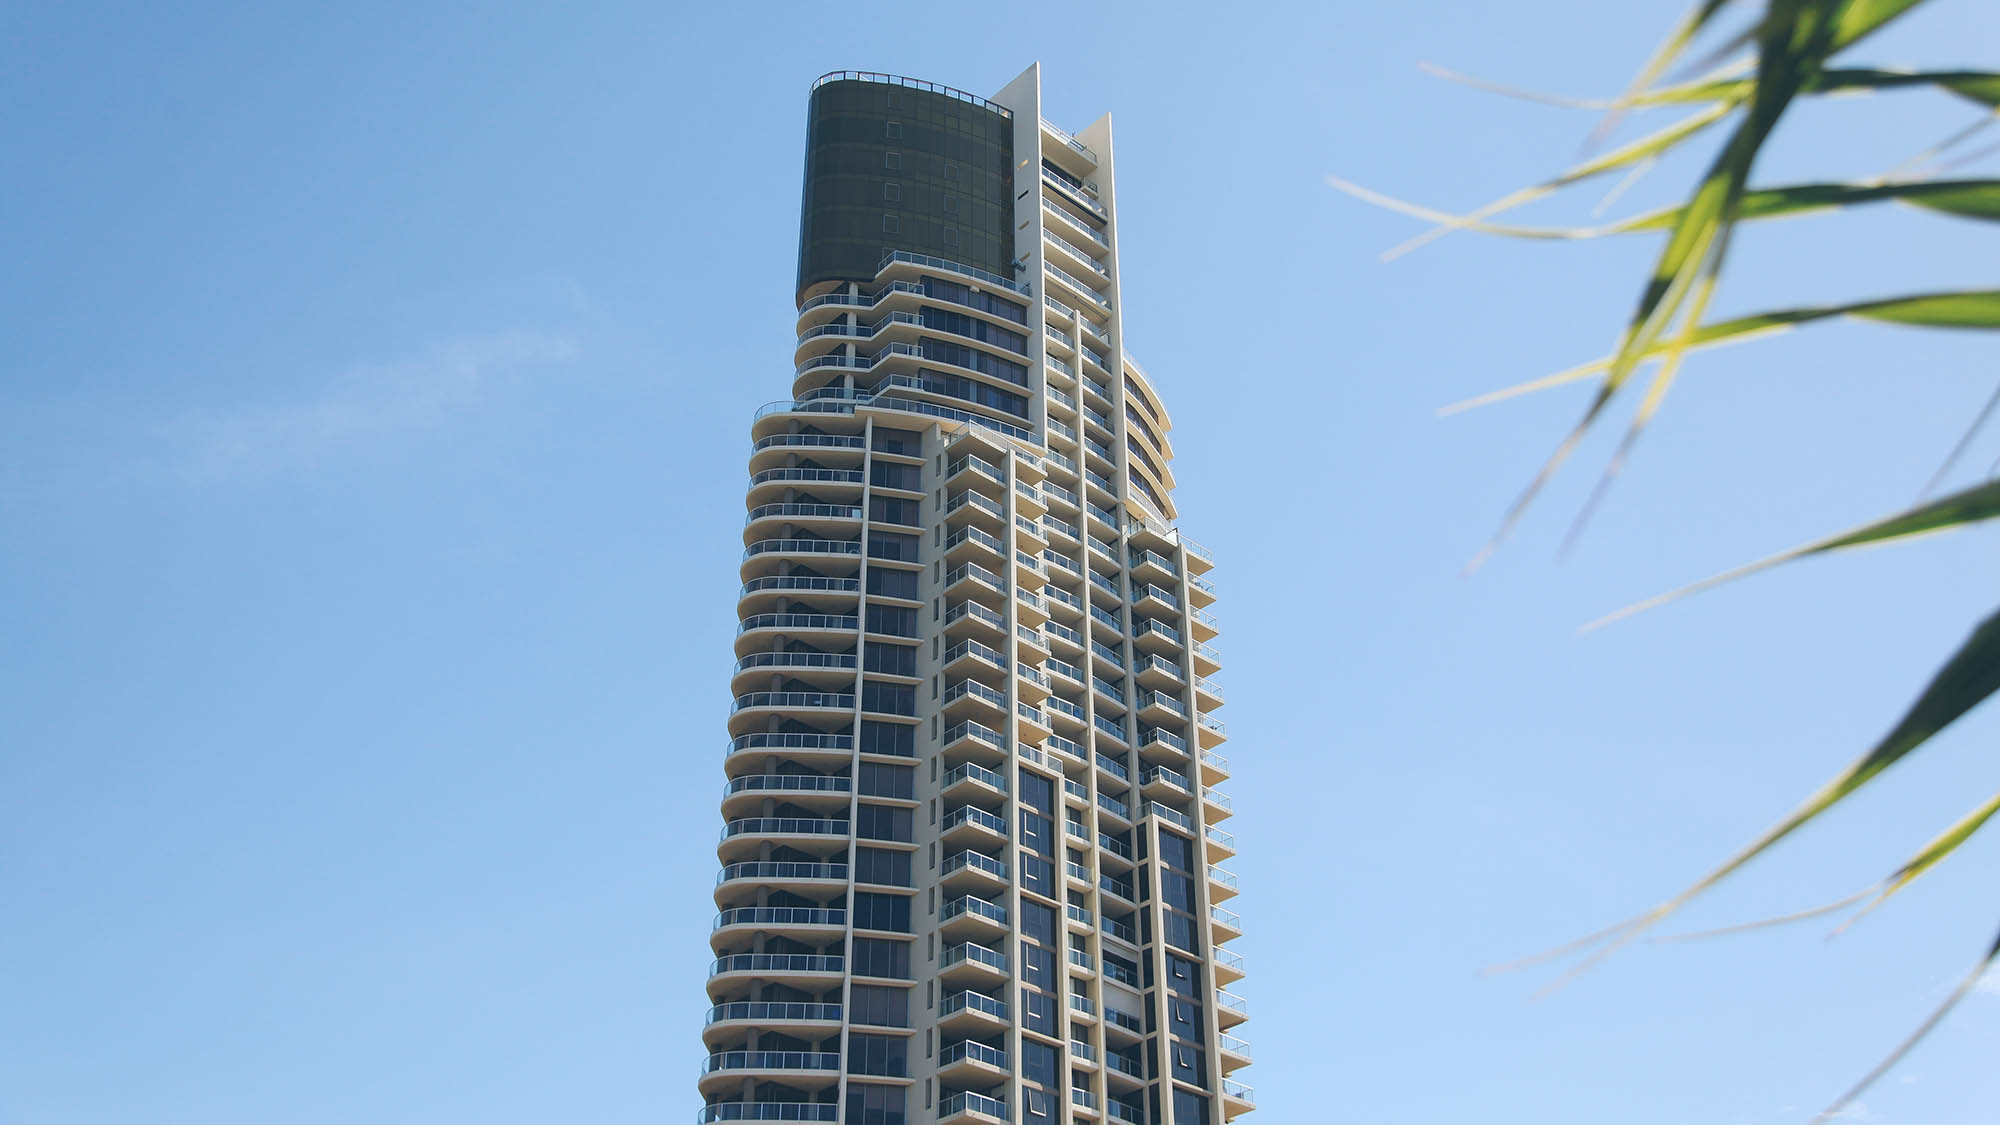 One of the newer towers in Southport is Pinnacle Point, which is home a residential apartments, as well as offices, retail and dining options at its base.